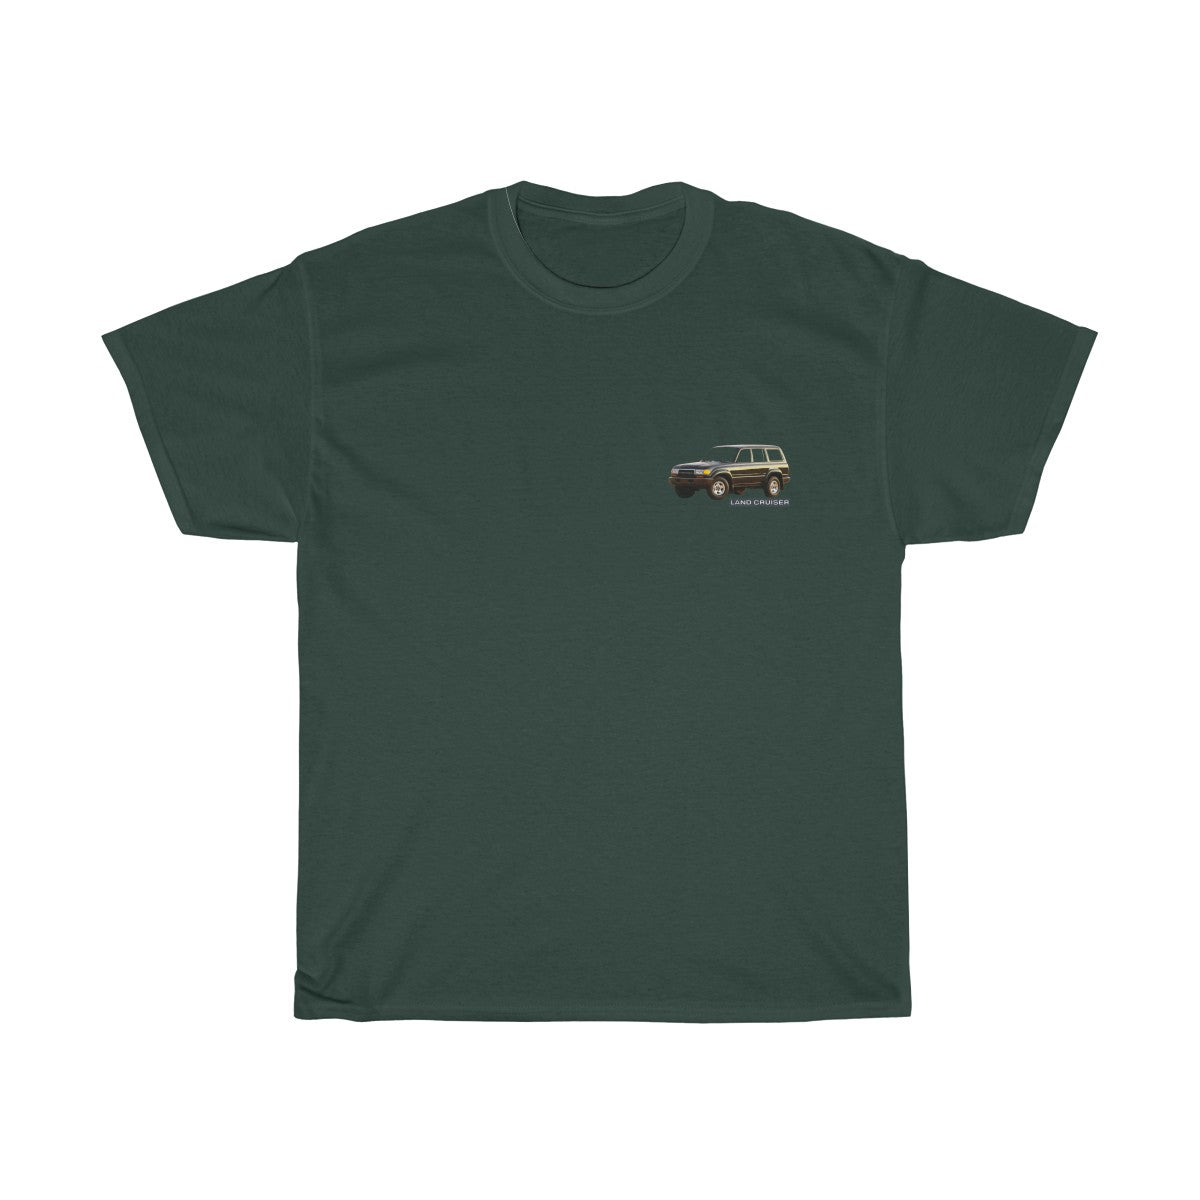 "Toyota Land Cruiser ""Legendary Full Time 4wd"" classic fit tshirt - By Reefmonkey"